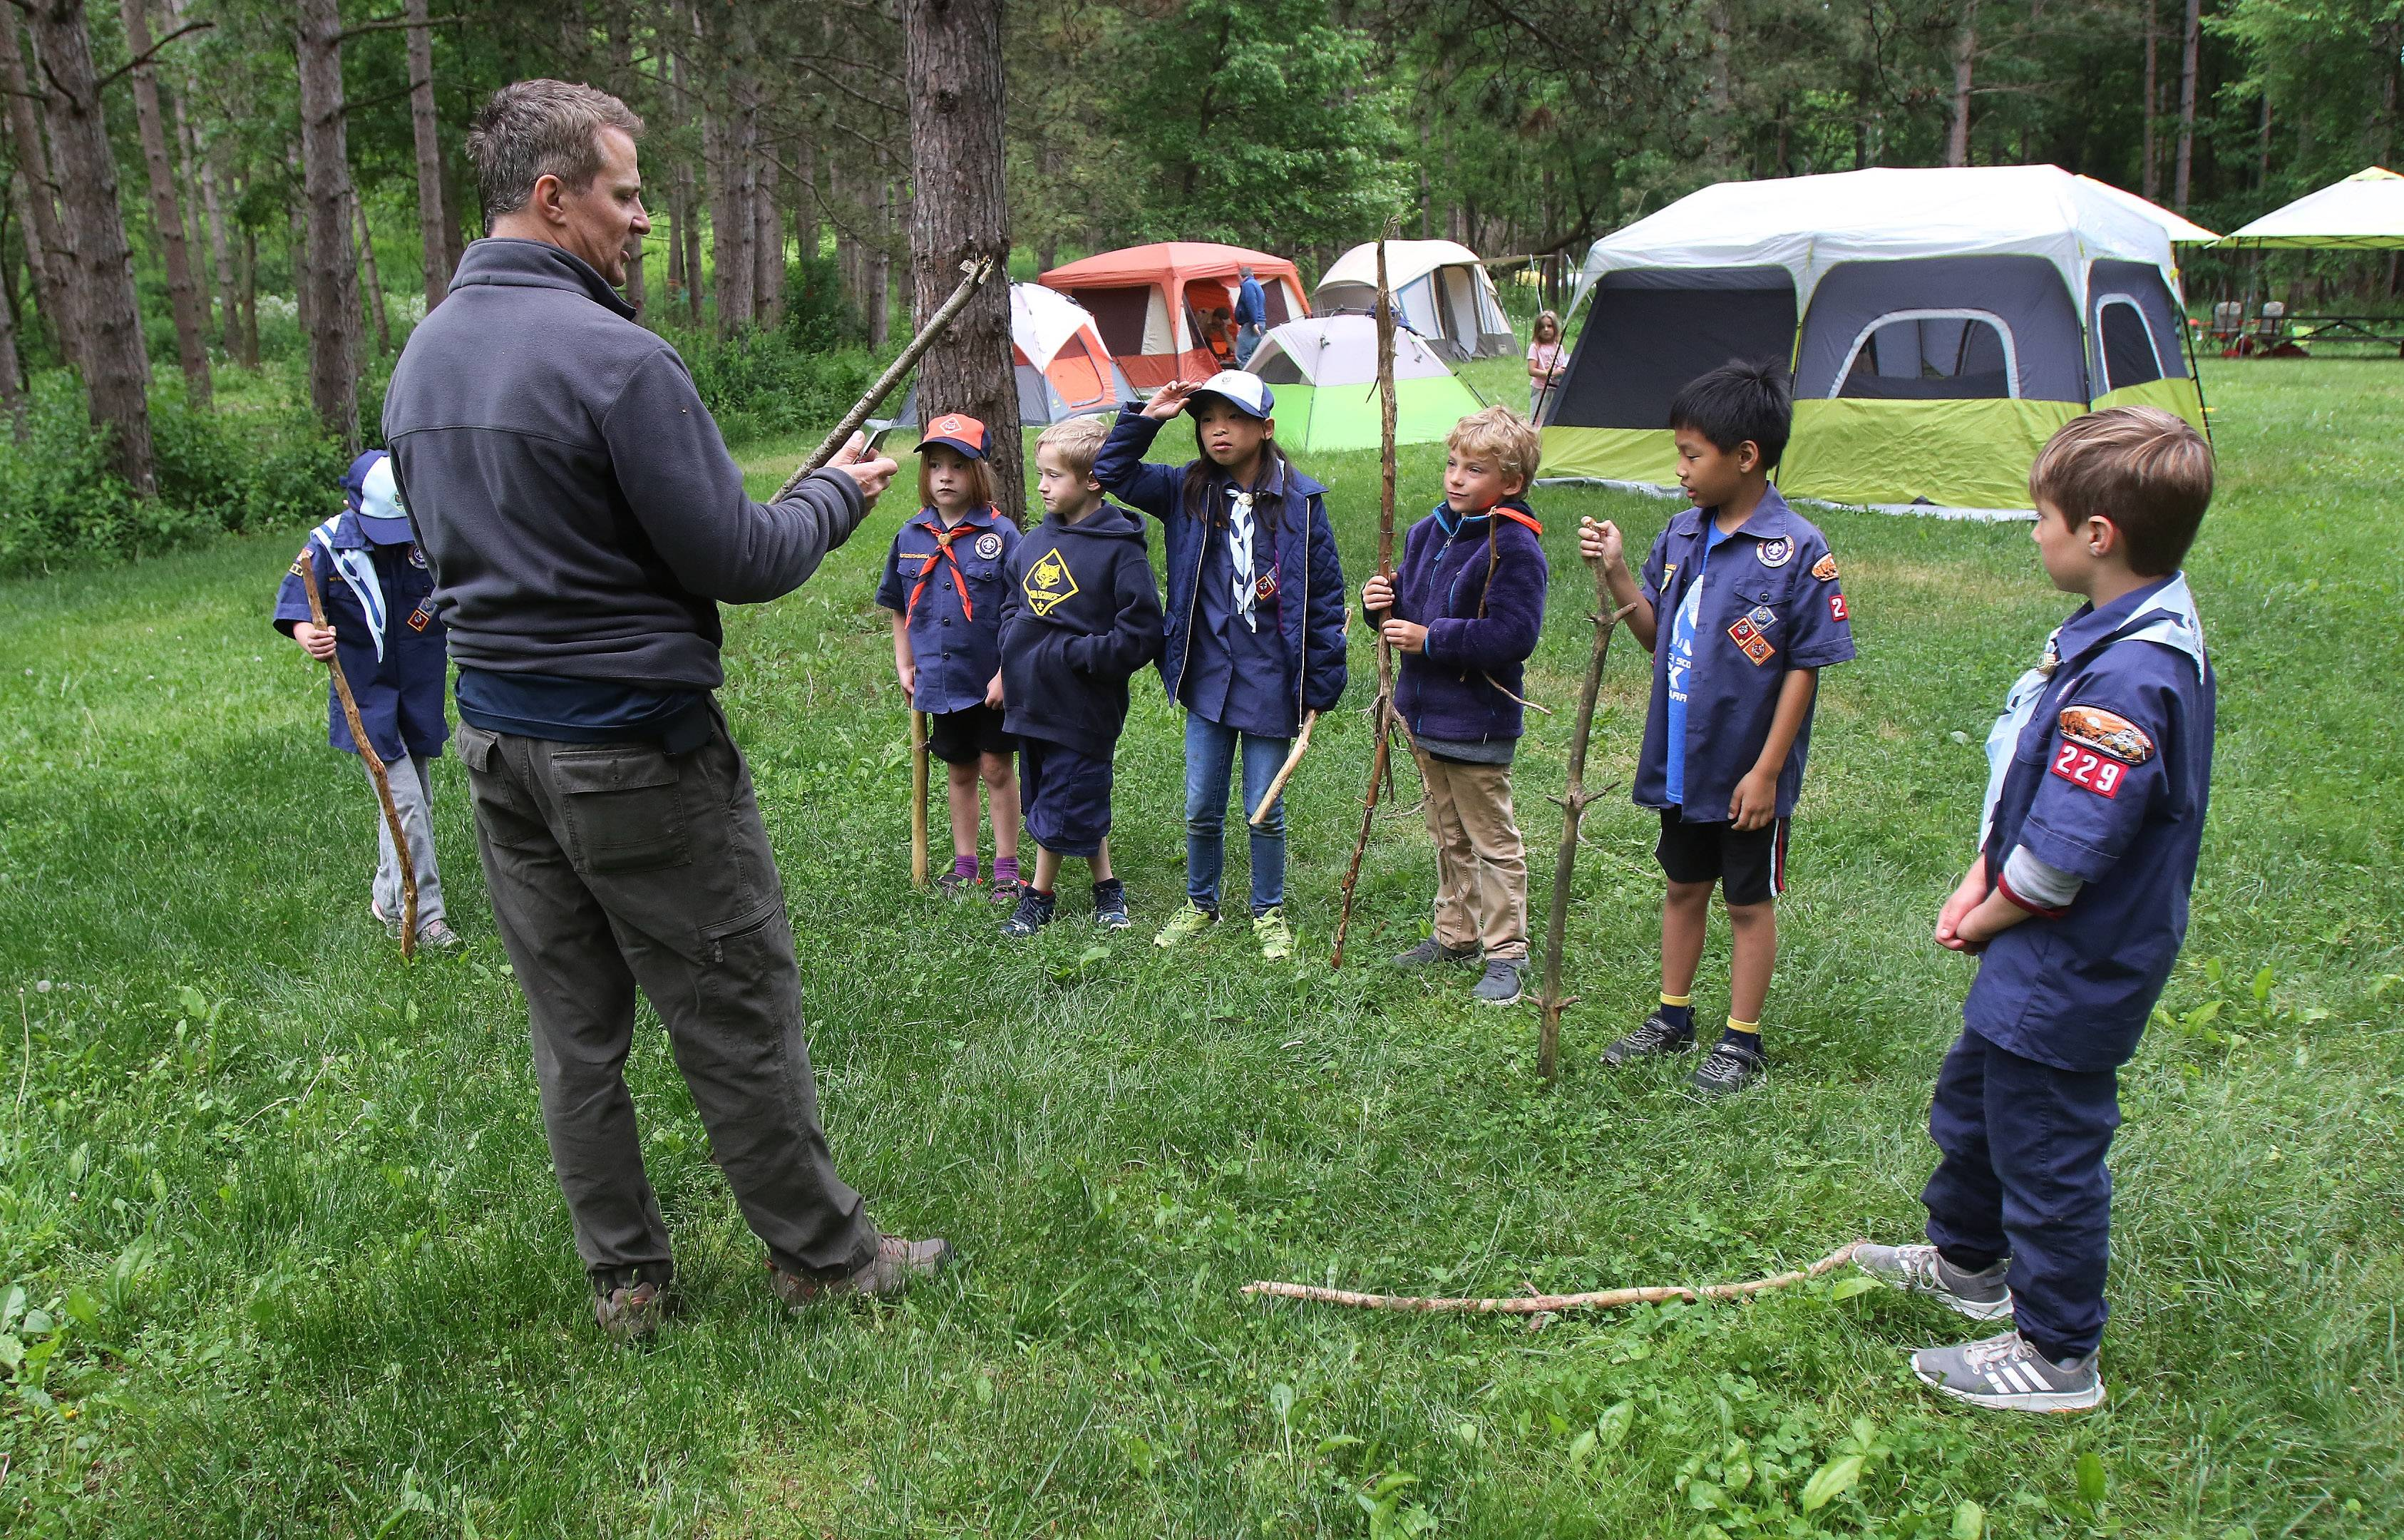 A former Scout and now a dad, Dave Szela talks about knife safety during a campout with Cub Scouts Pack 229 at Kettle Moraine State Forest in Wisconsin. The pack is among the first in the region to include girls.